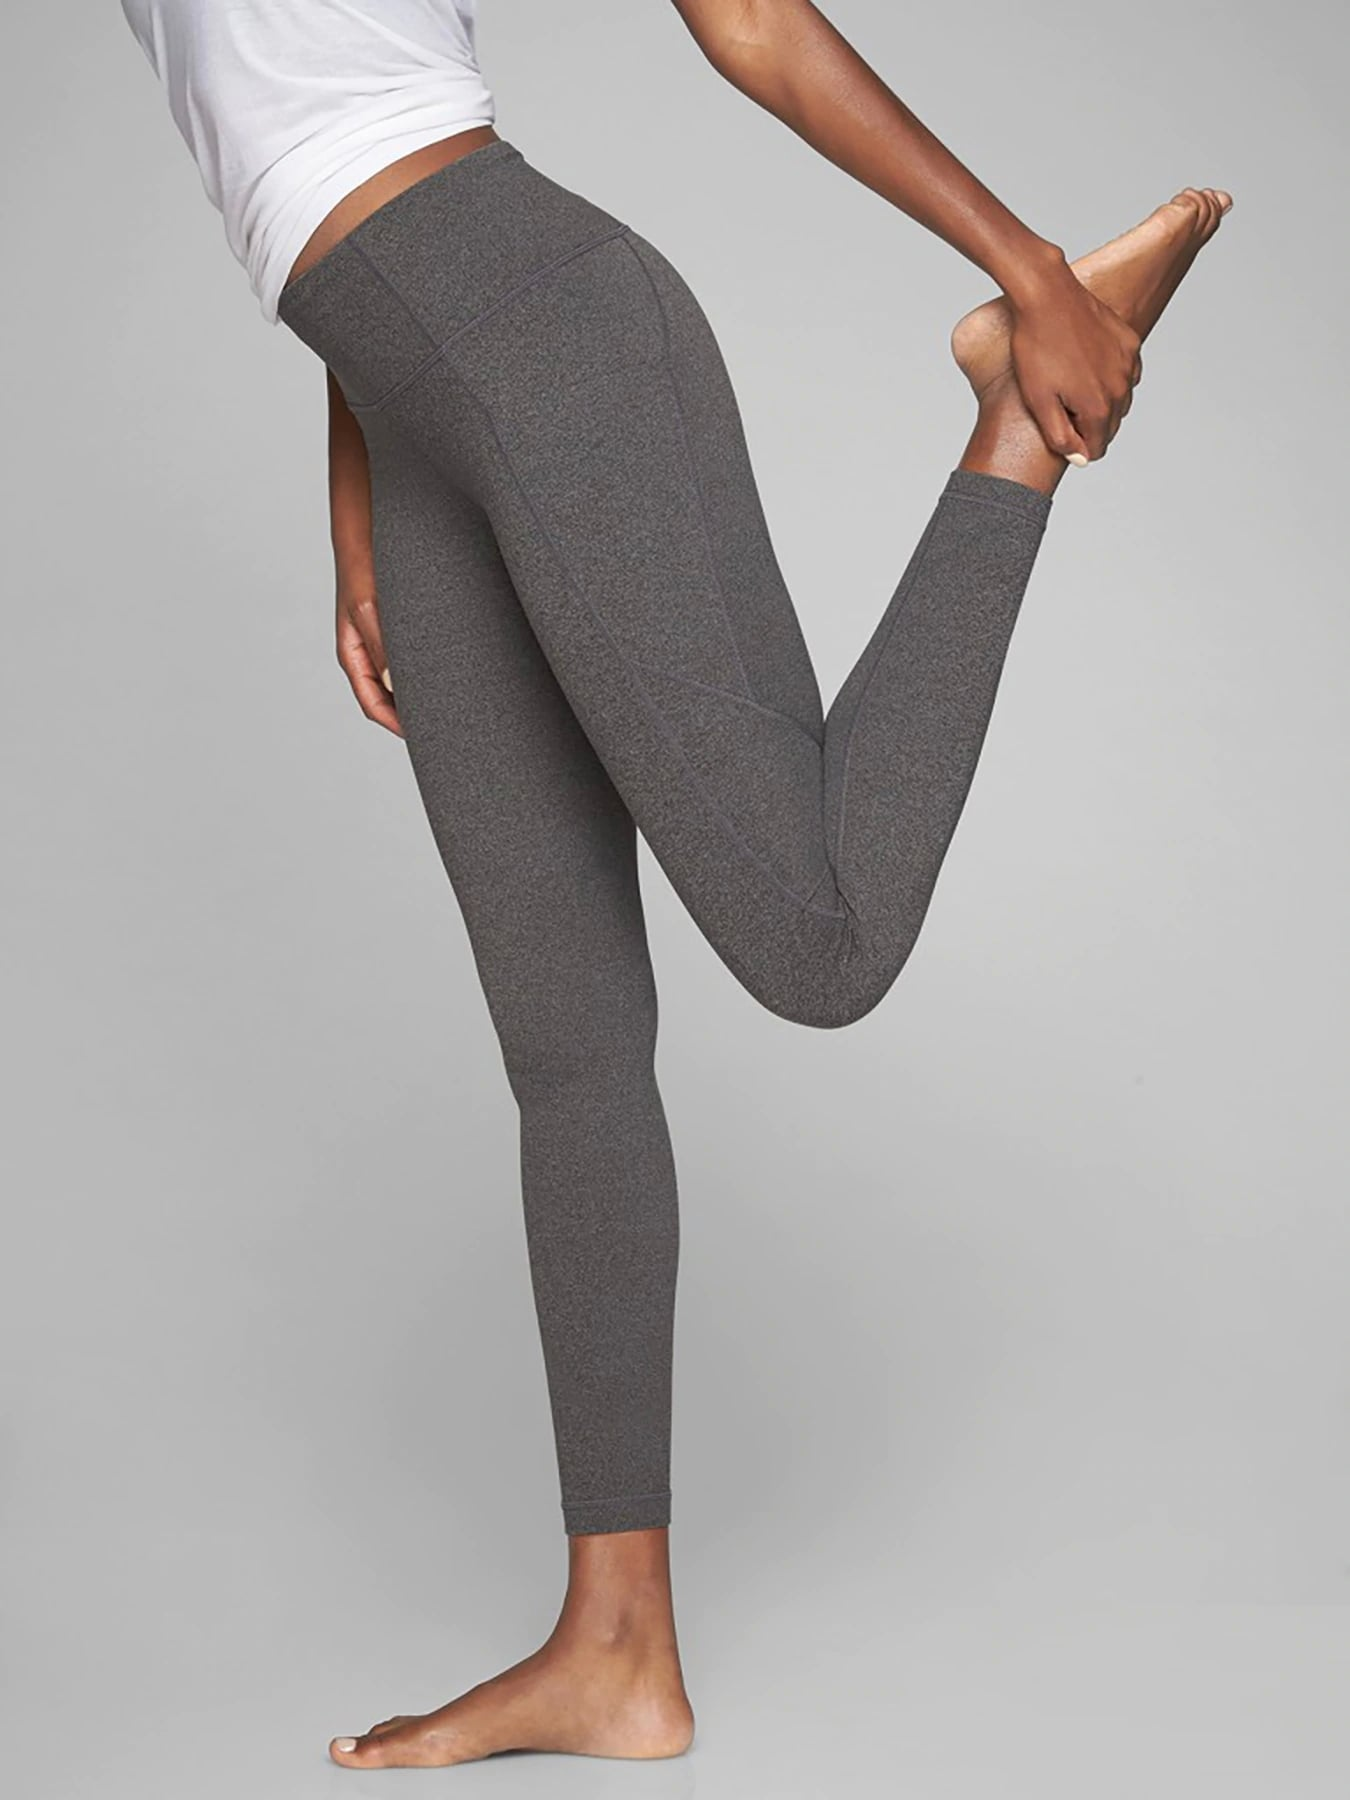 I Always Felt Uncomfortable and Insecure at the Gym, Until I Tried These Leggings